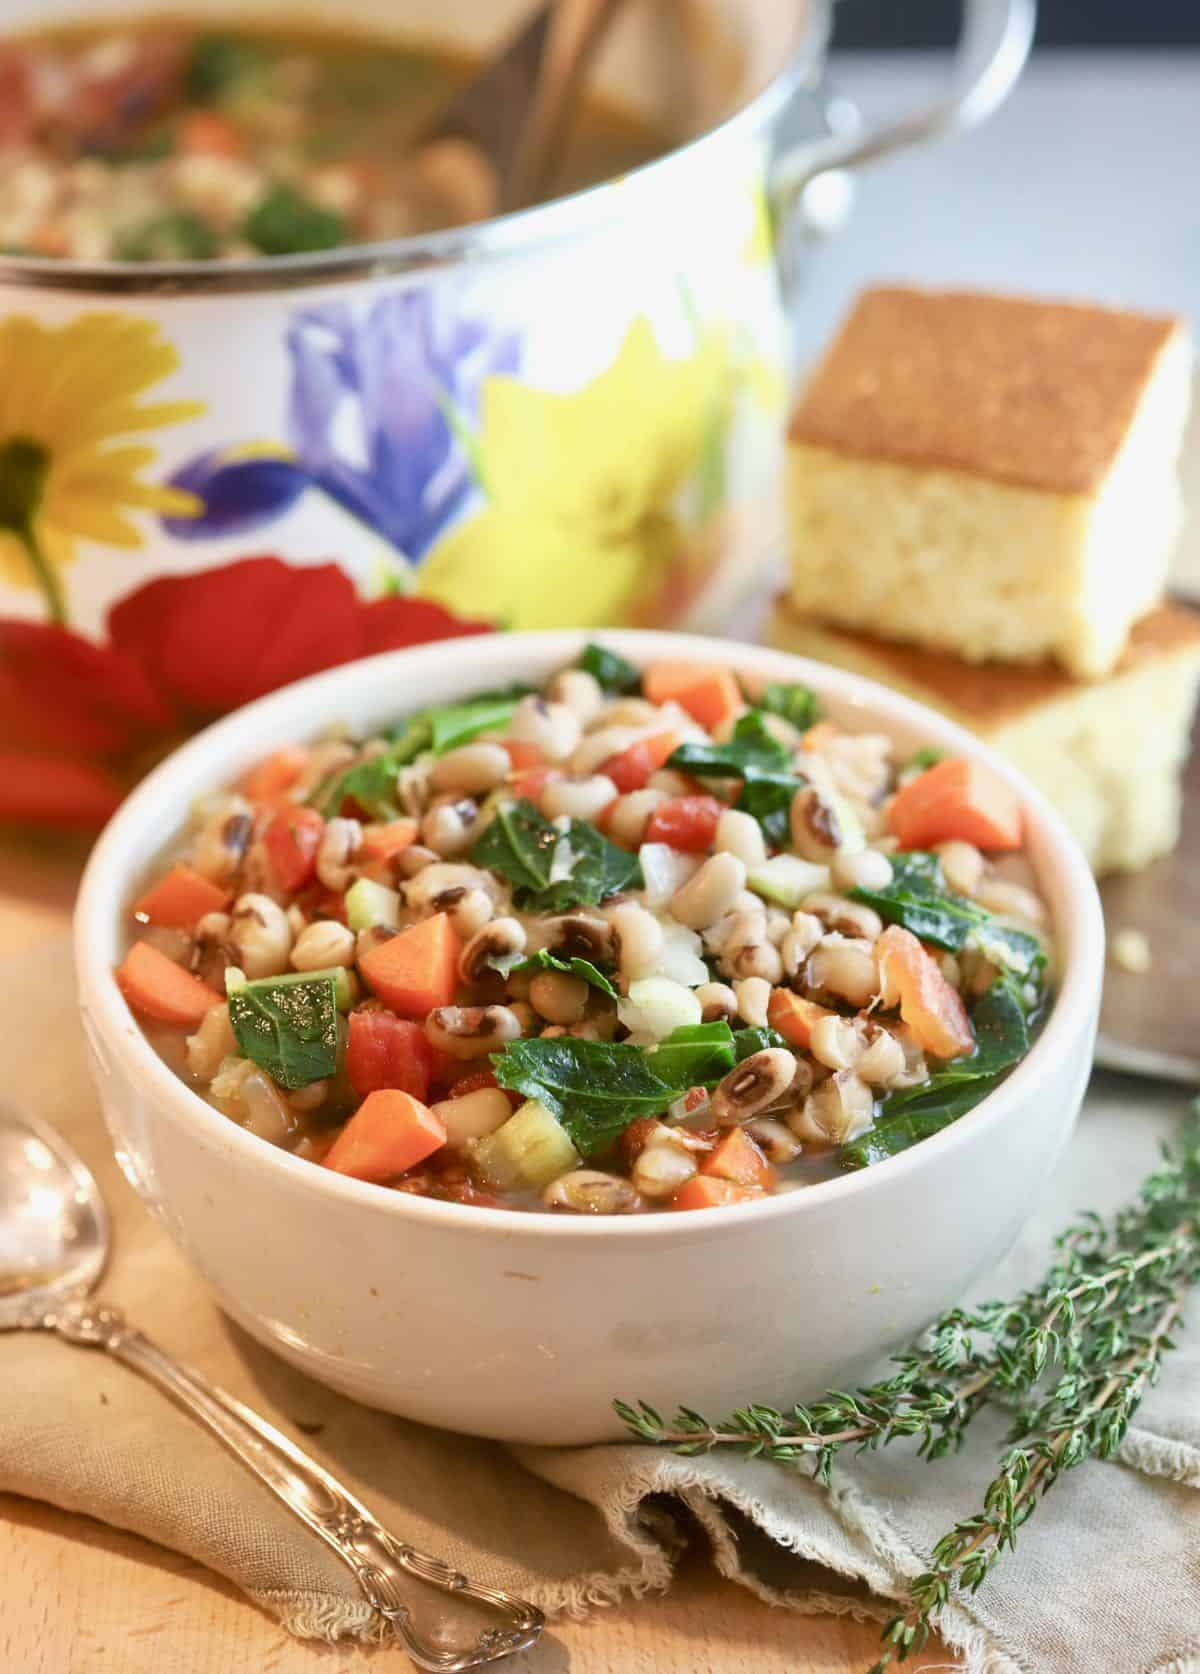 A bowl of black-eyed pea soup with cornbread.